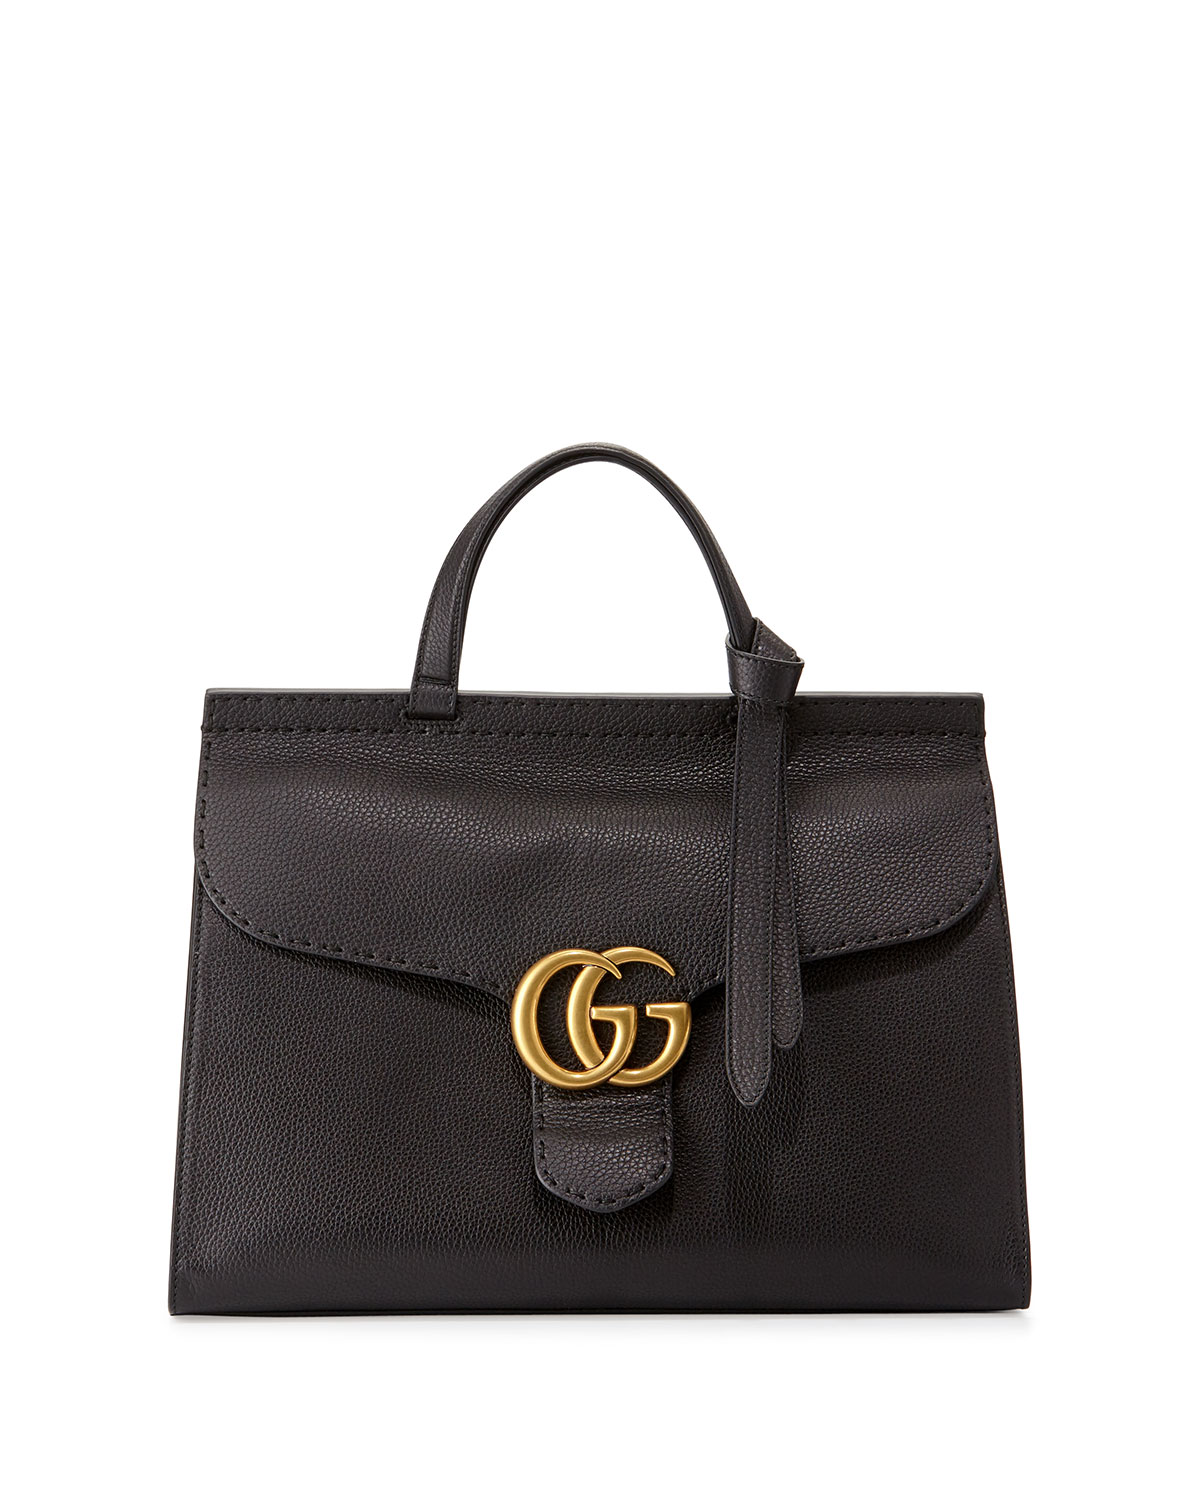 4450a3434f0c Gucci Marmont Large Leather Top-Handle Bag, Black | Neiman Marcus